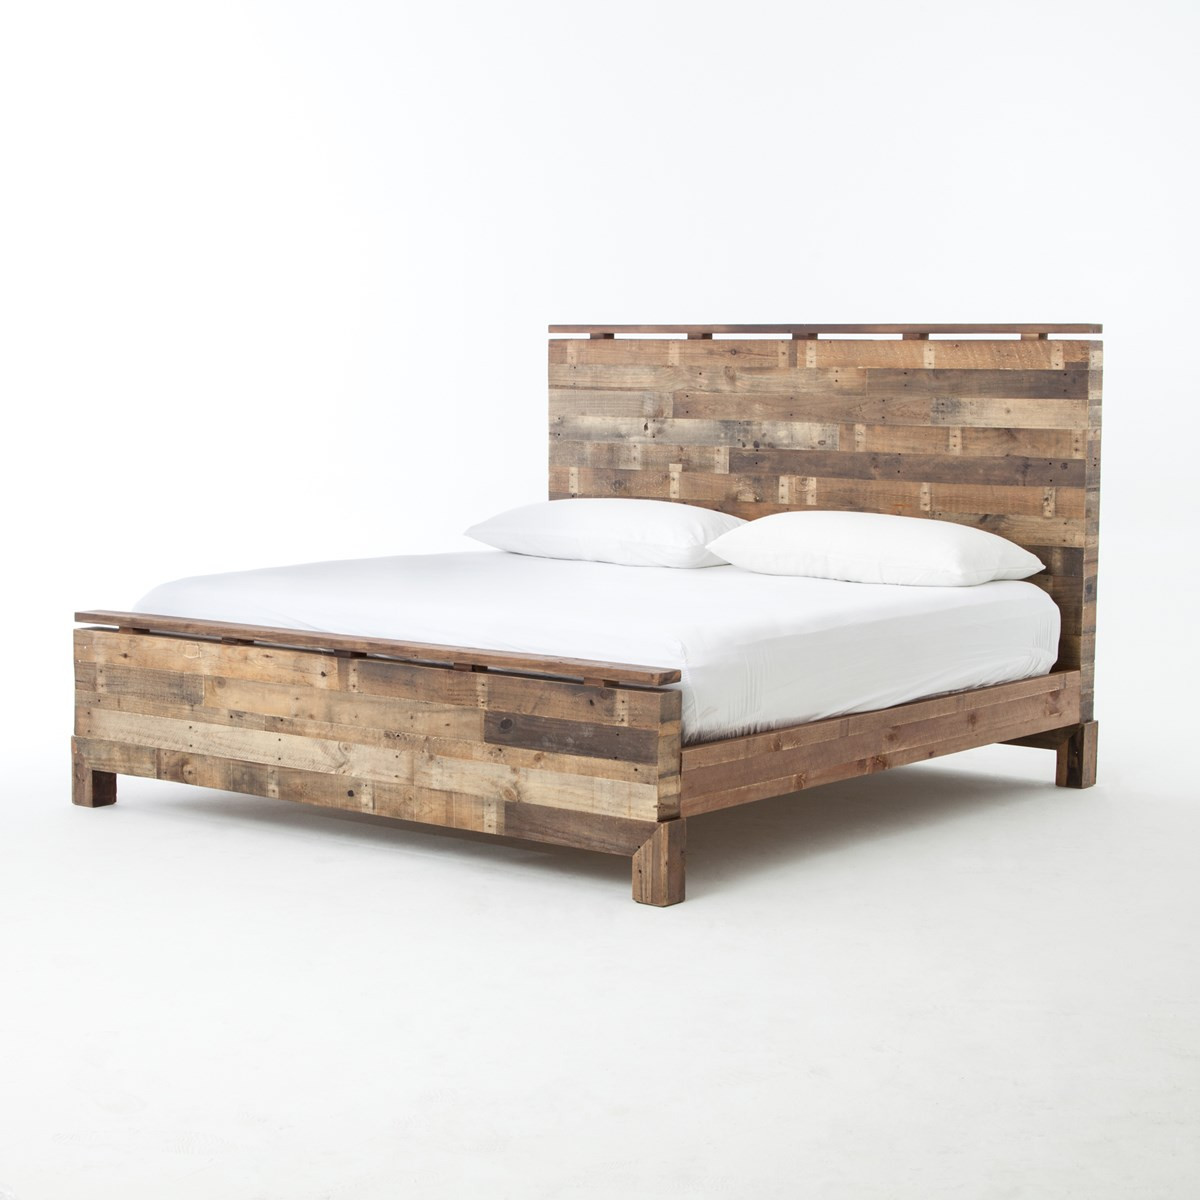 Angora Rustic Reclaimed Wood King Size Platform Bed Zin Home